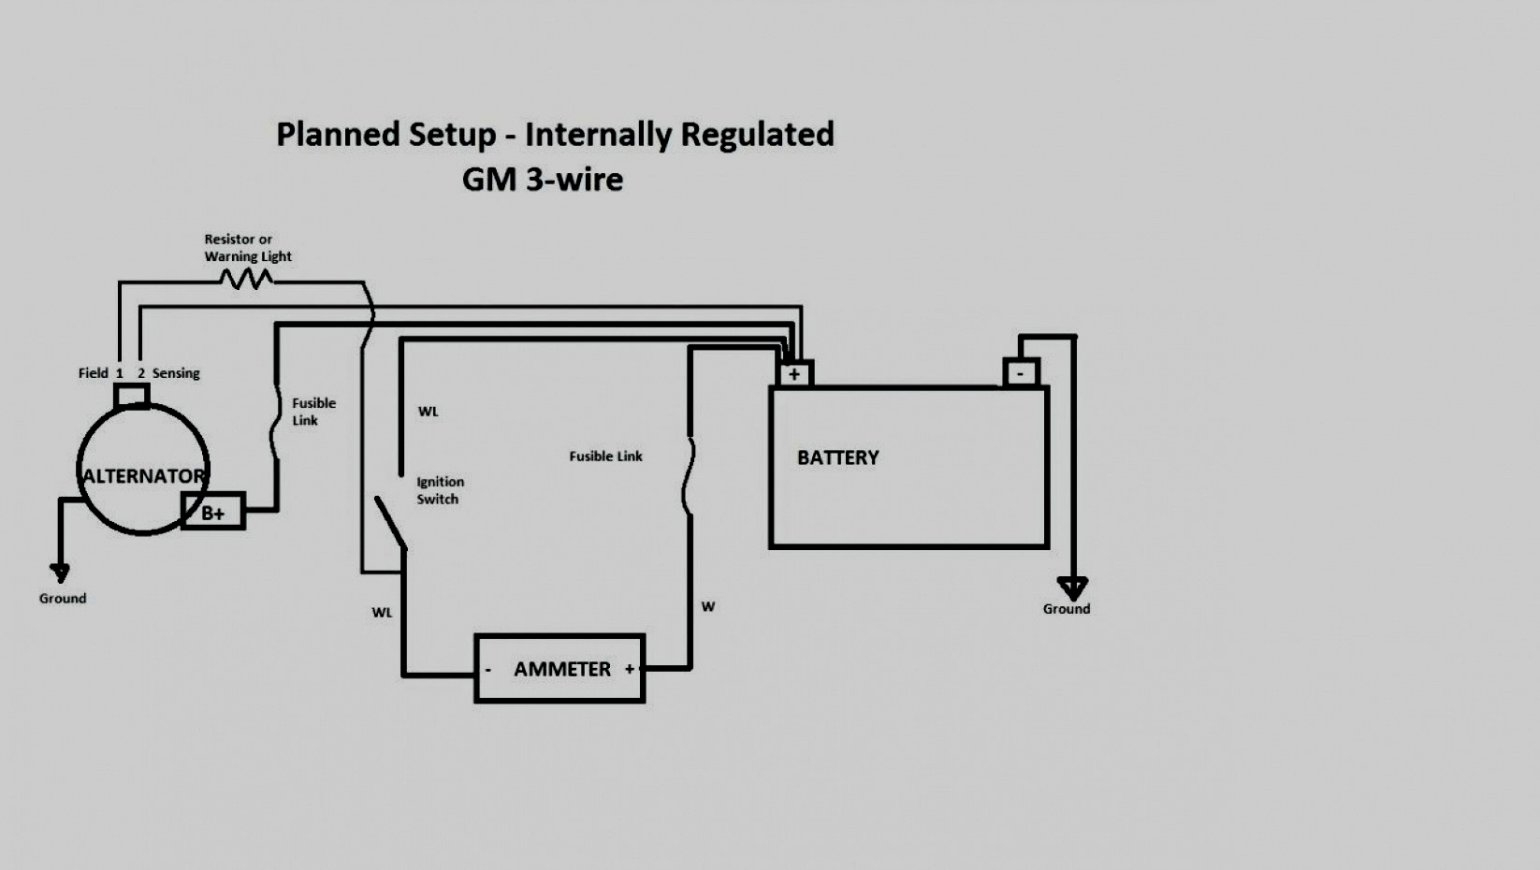 Gm 3 1 Wiring | Wiring Diagram - Gm 1 Wire Alternator Wiring Diagram